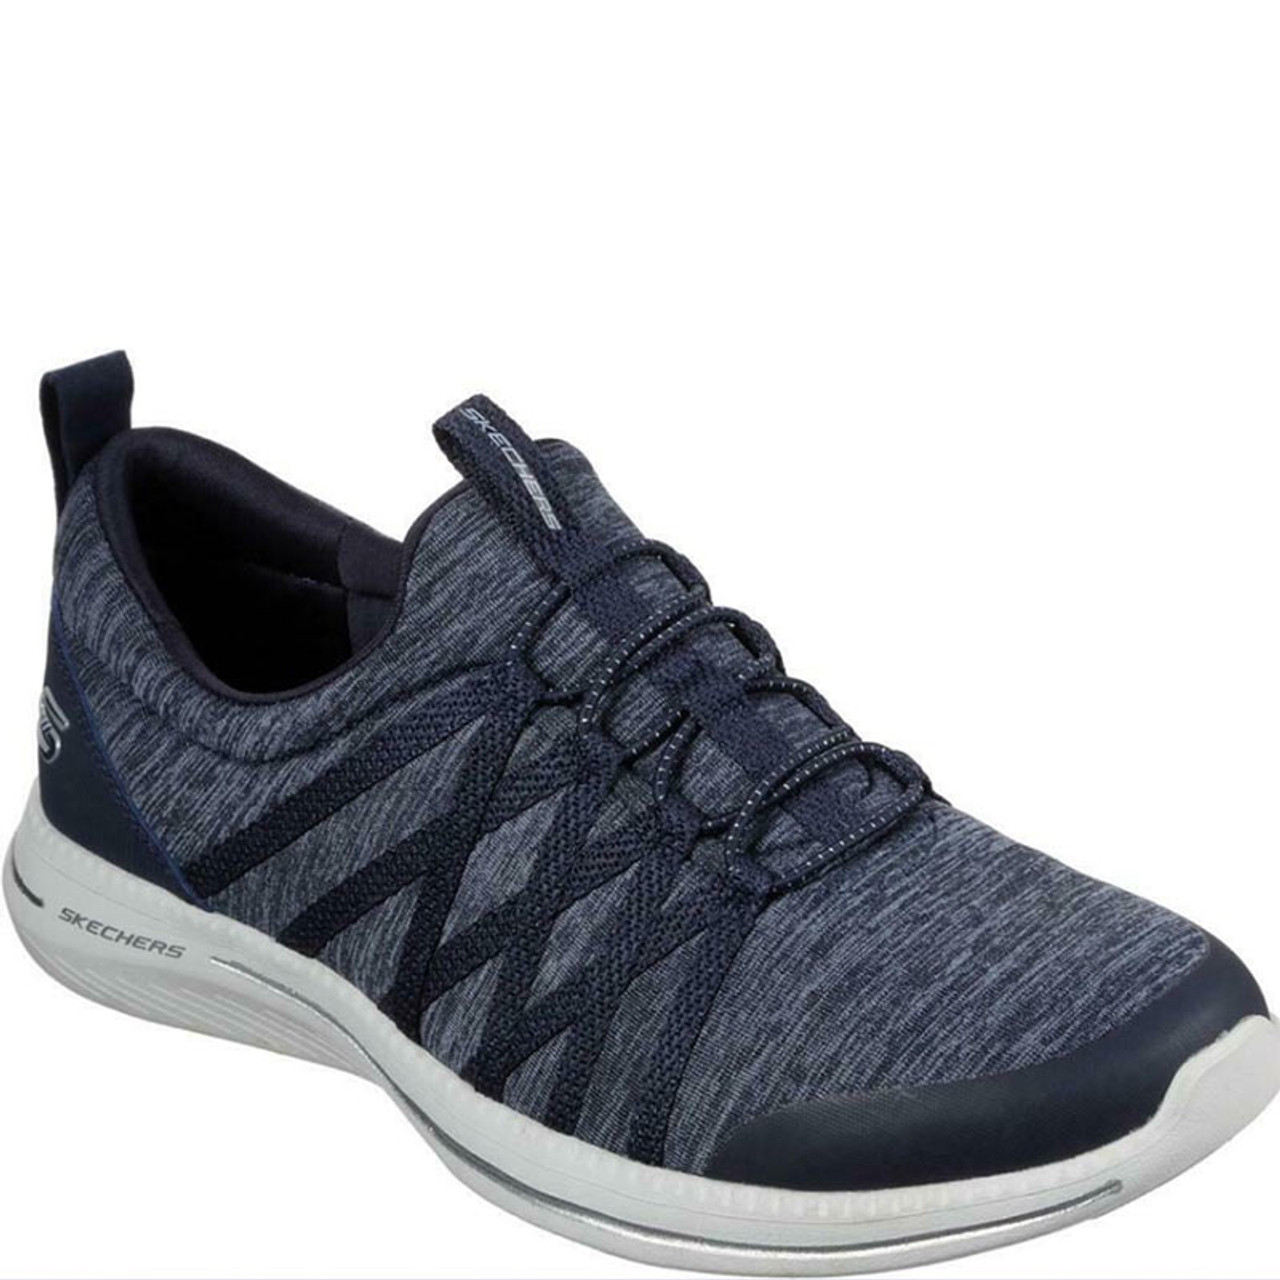 CITY PRO WHAT A VISION Navy Sneakers